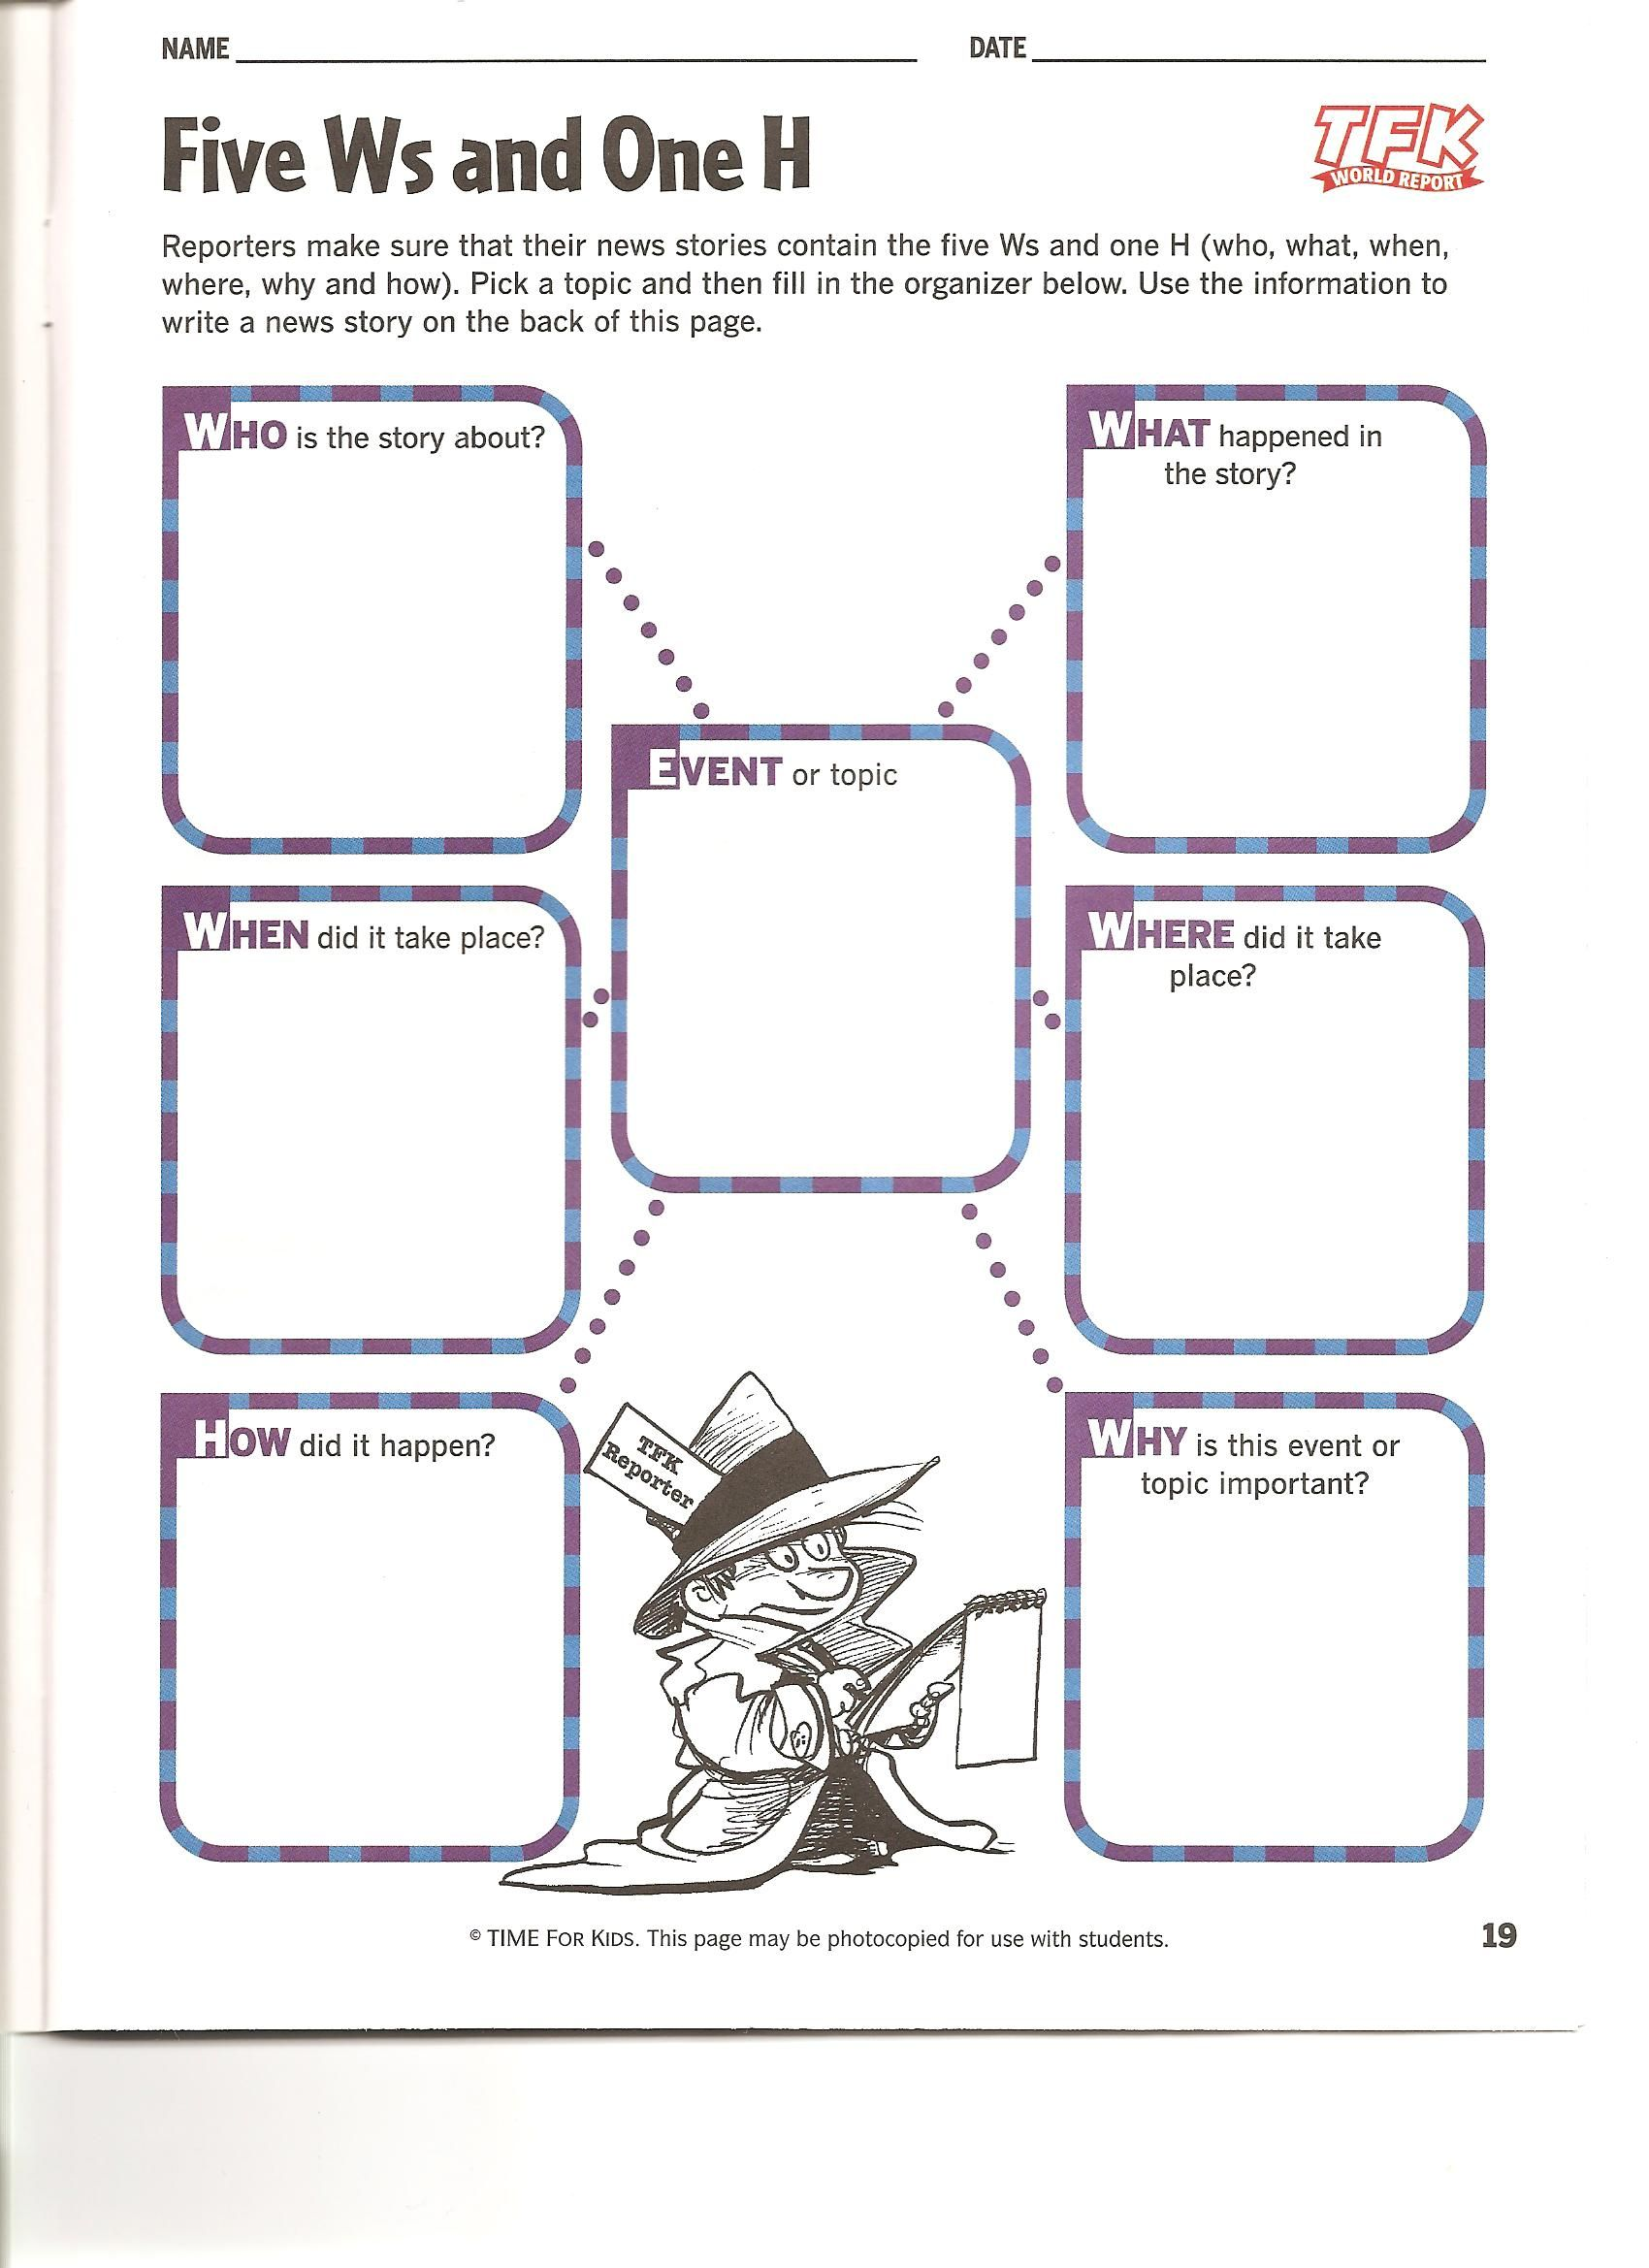 5 W S And 1 H 001 Jpg 1 700 2 338 Pixels Graphic Organizers Teaching Literacy Reading Strategies